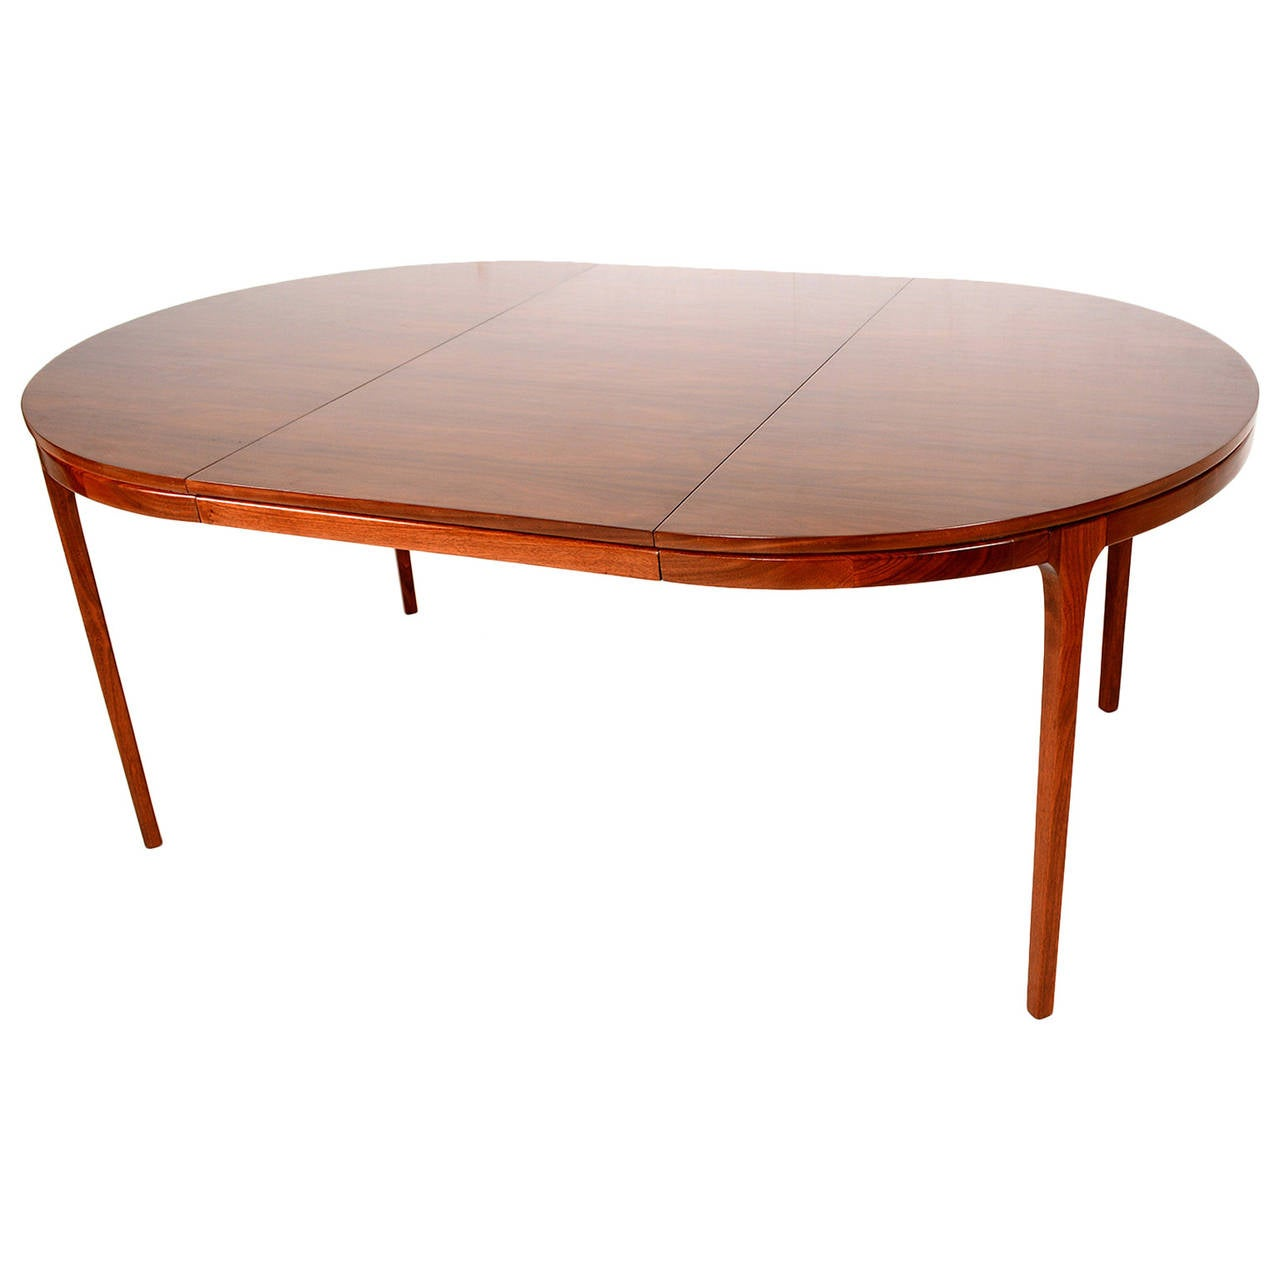 Walnut oval dining table mid century at 1stdibs for Oval dining table